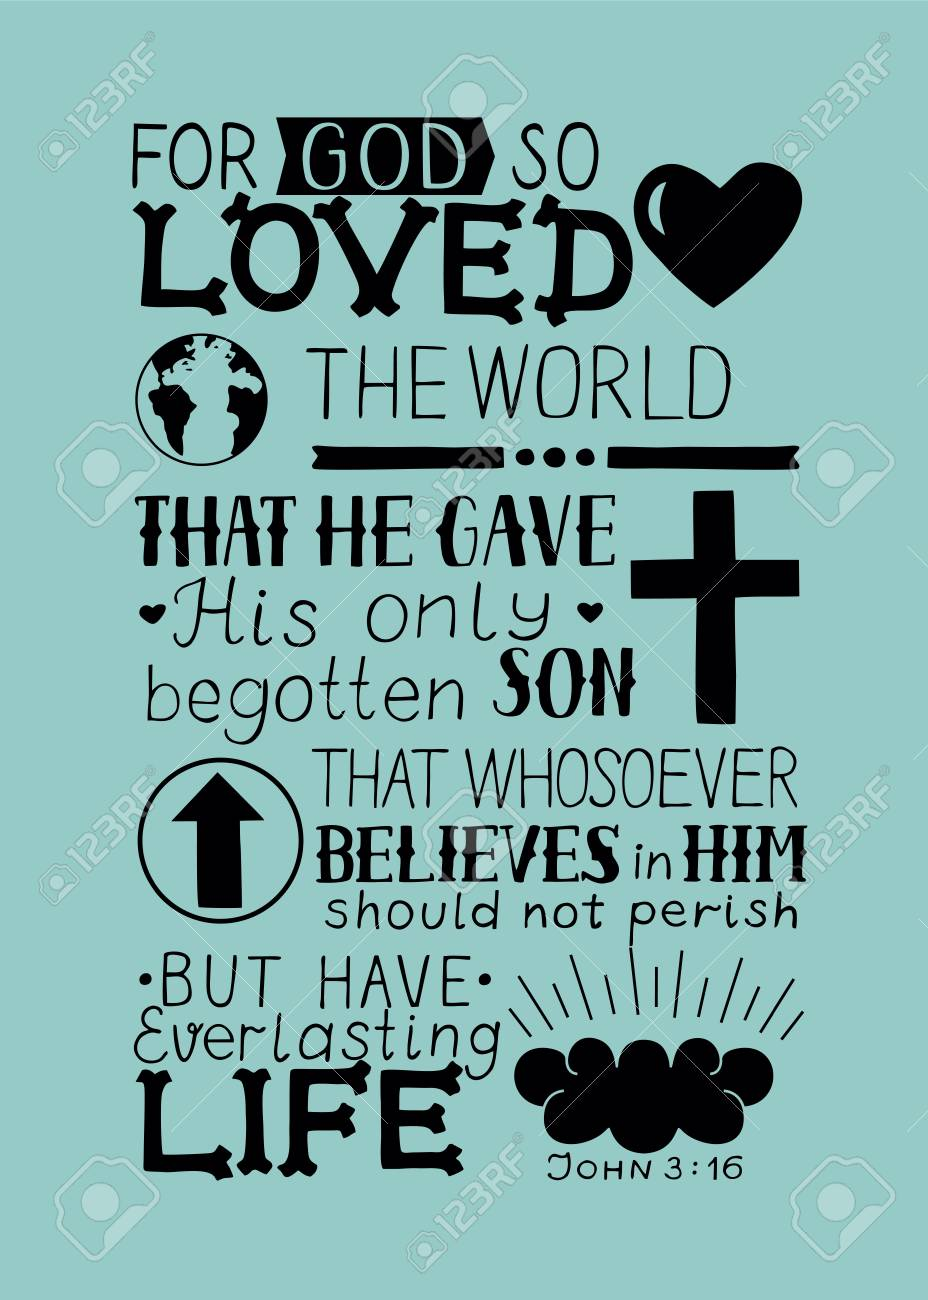 Golden Bible Verse John 3 16 For God So Loved The World Made